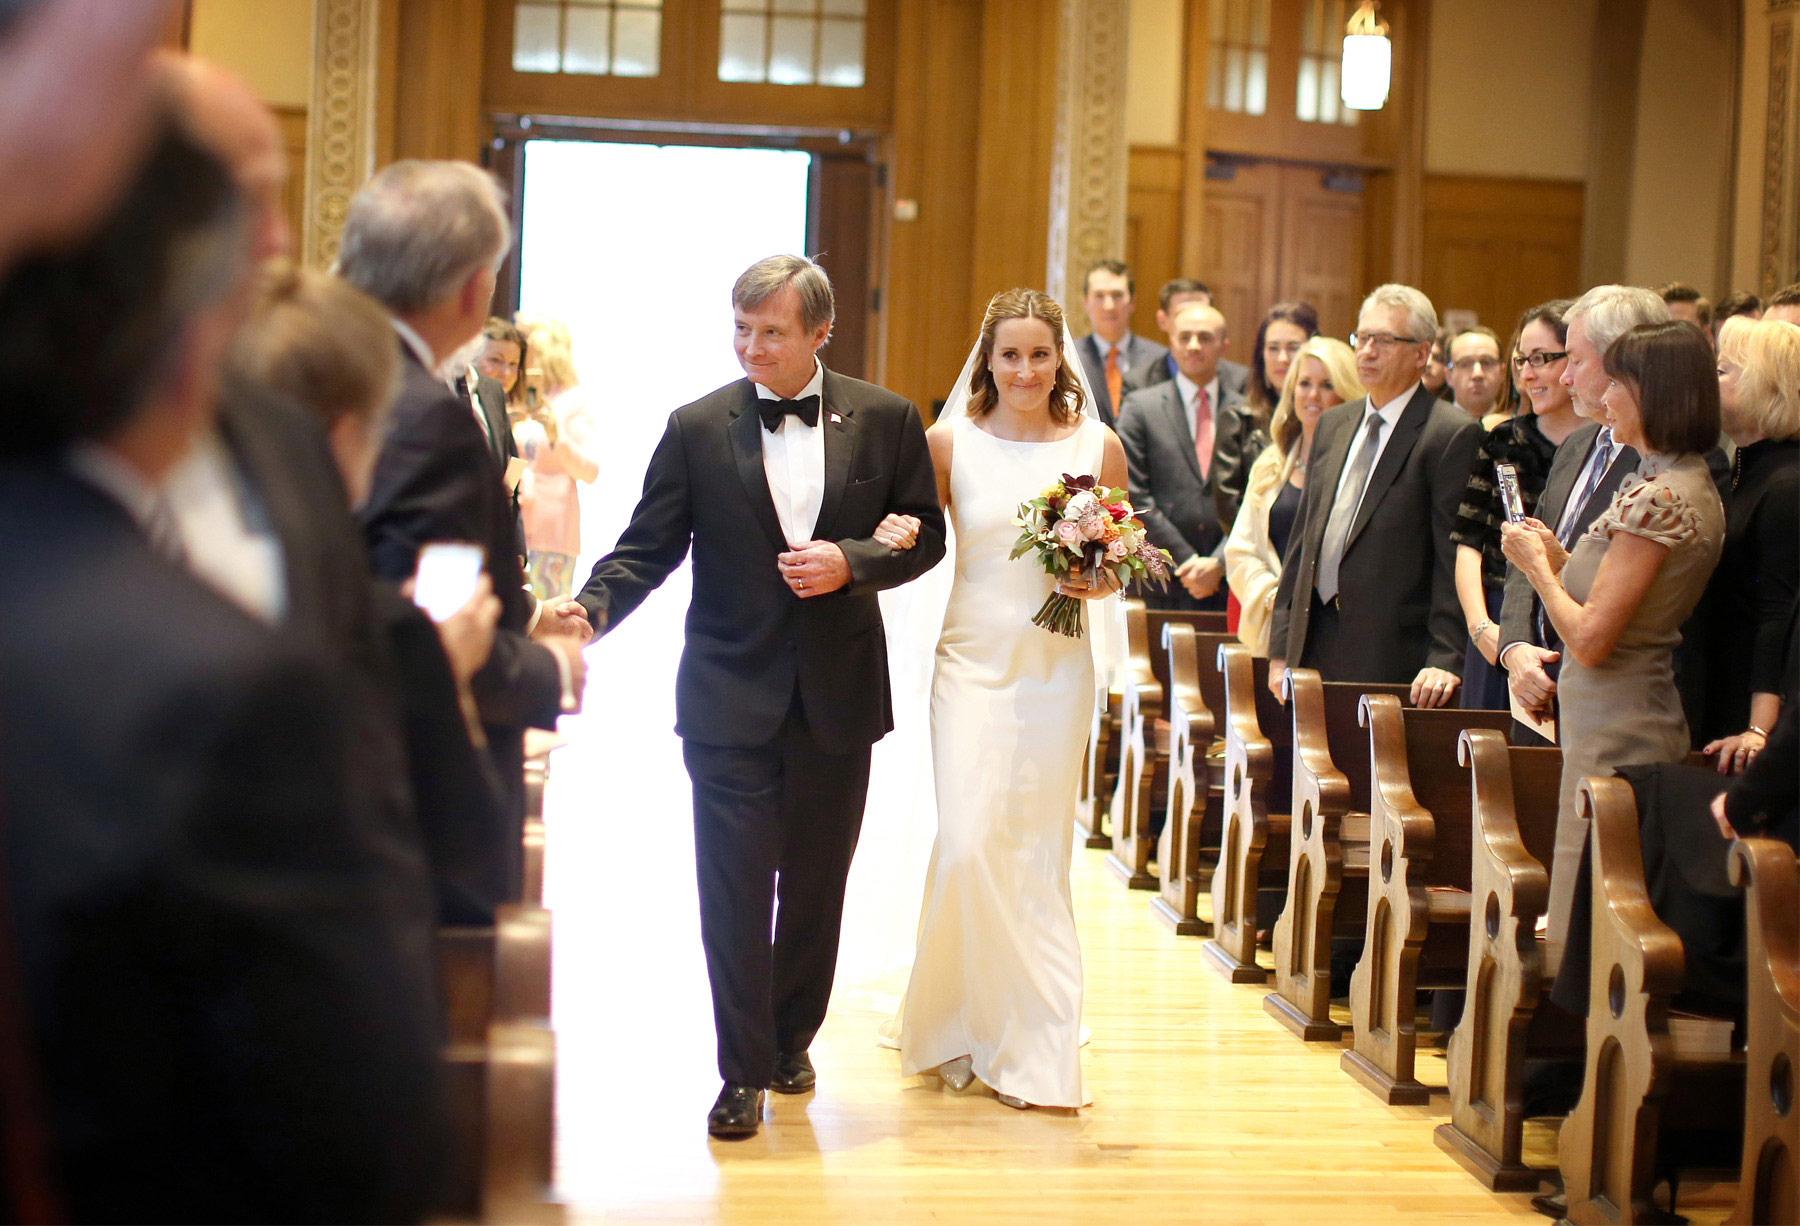 06-Saint-Paul-Minnesota-Wedding-Photographer-by-Andrew-Vick-Photography-Fall-Autumn-Church-of-the-Assumption-Ceremony-Bride-Processional-Father-Parents-Kathryn-and-Sam.jpg